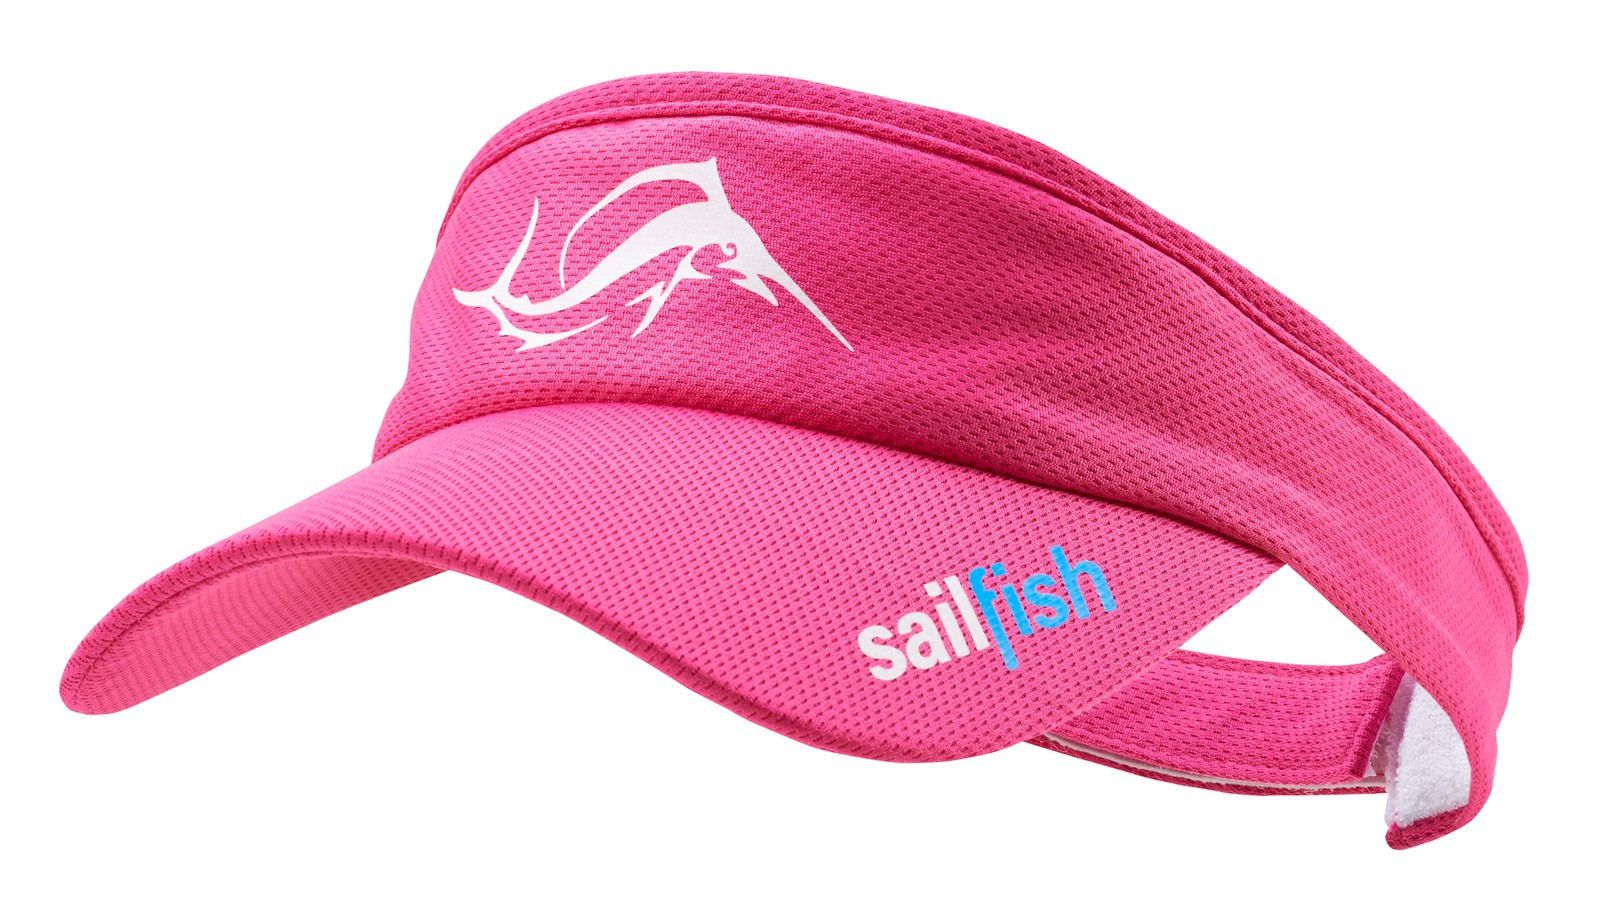 sailfish - Runninng visor - růžový